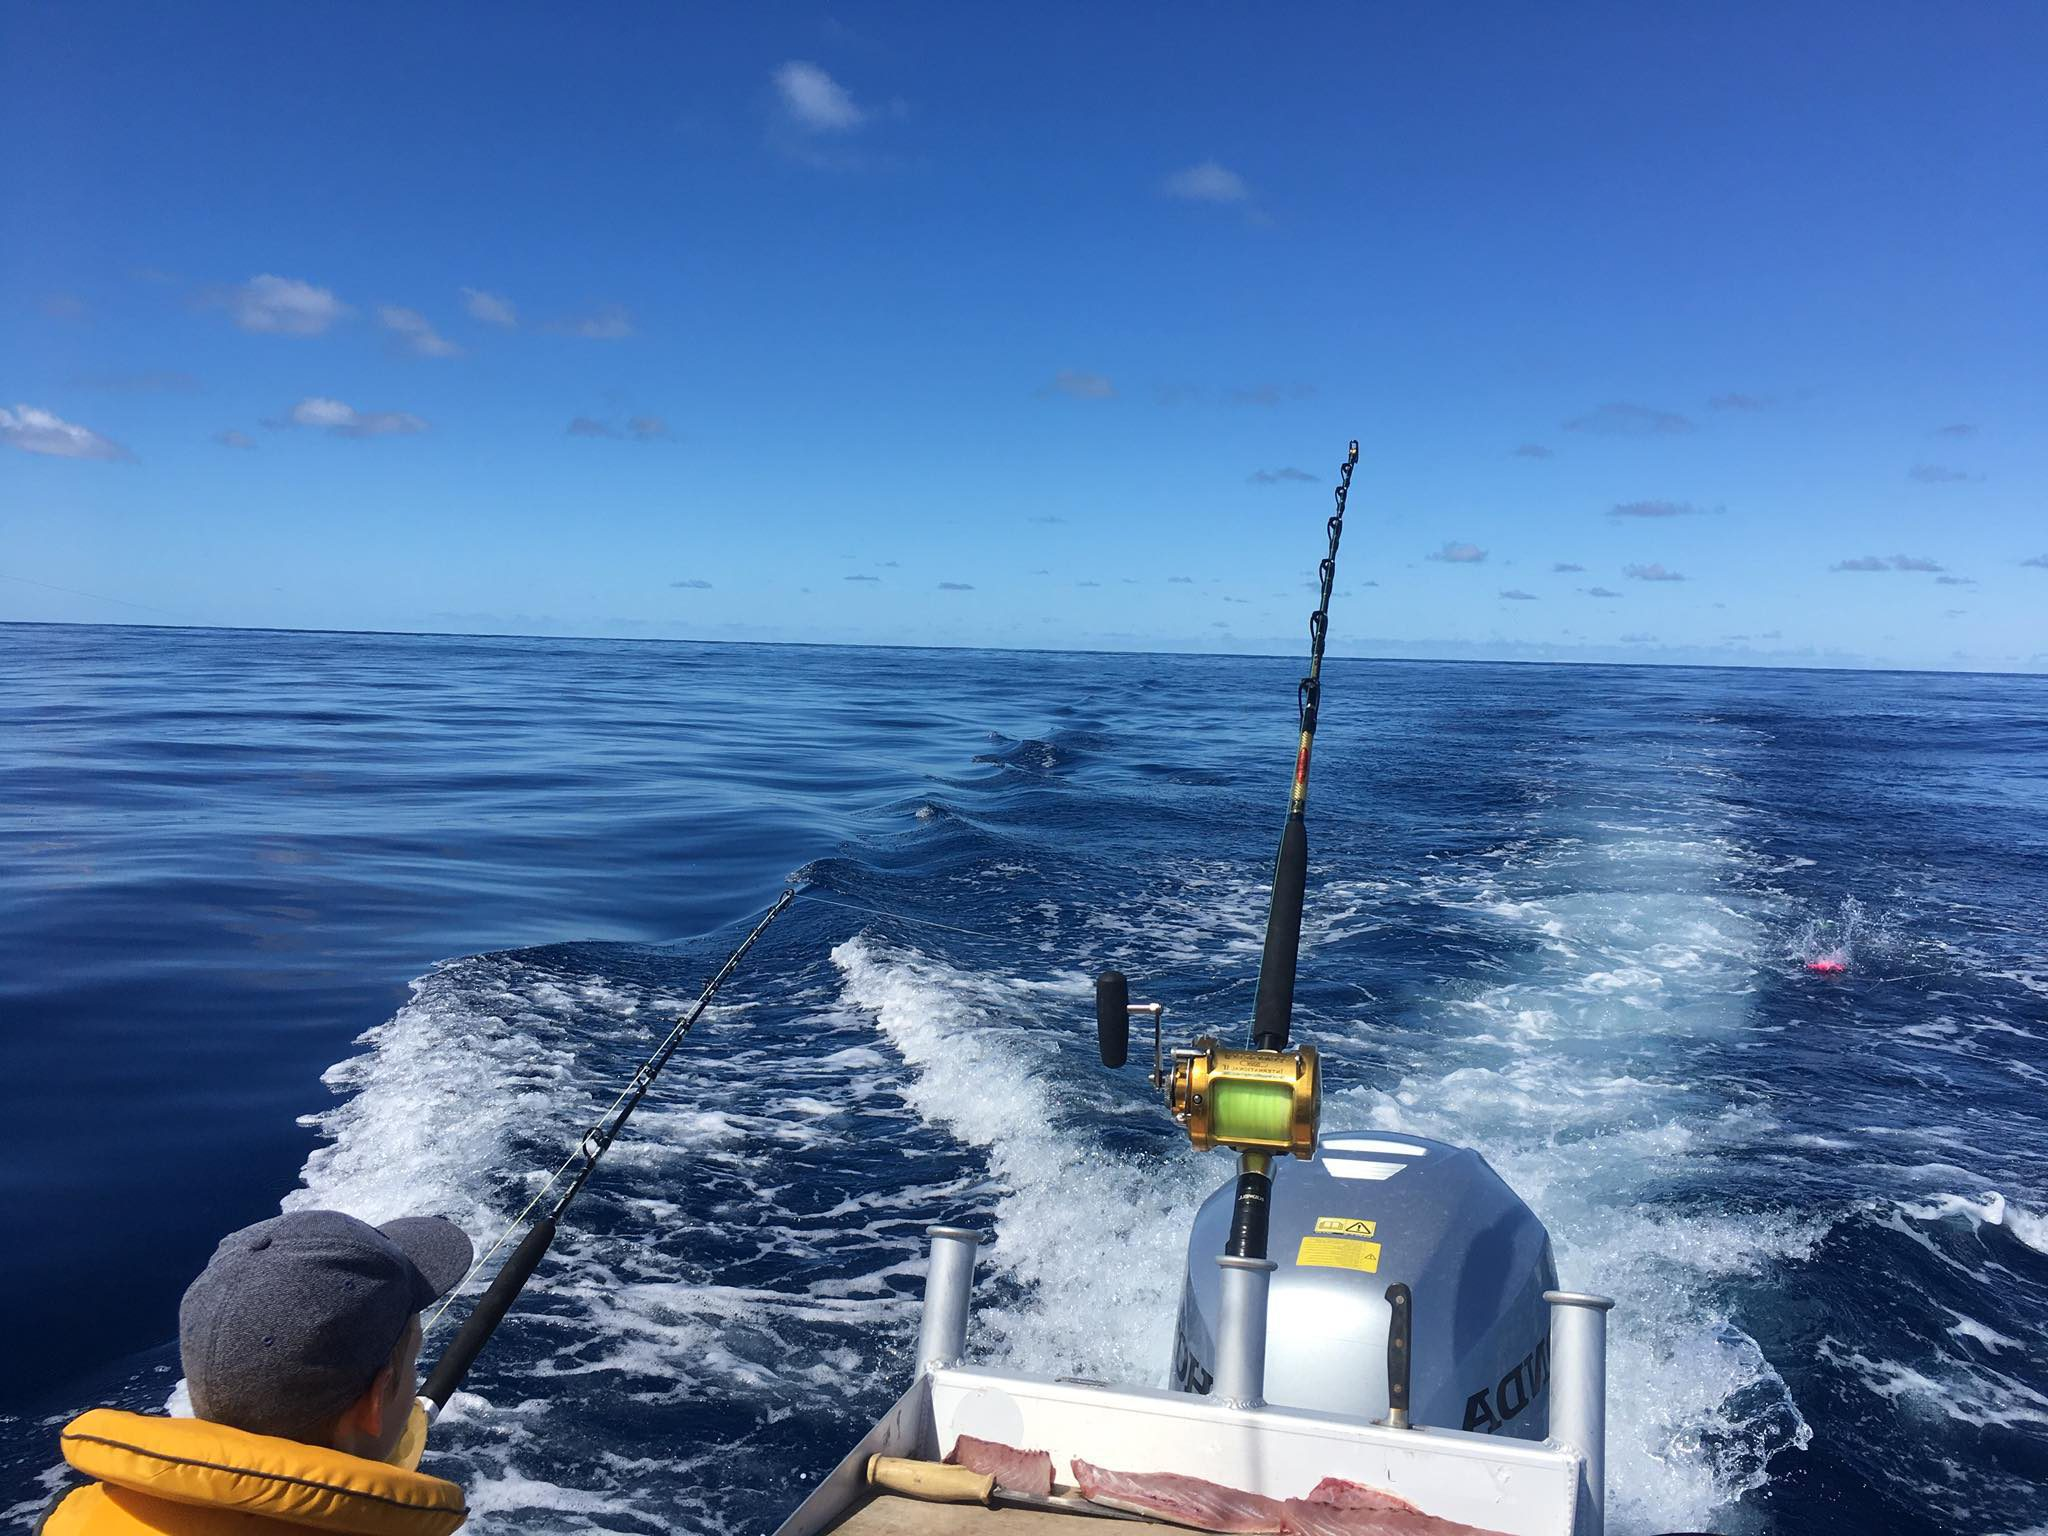 Trawling in the boat wake on a stunning day